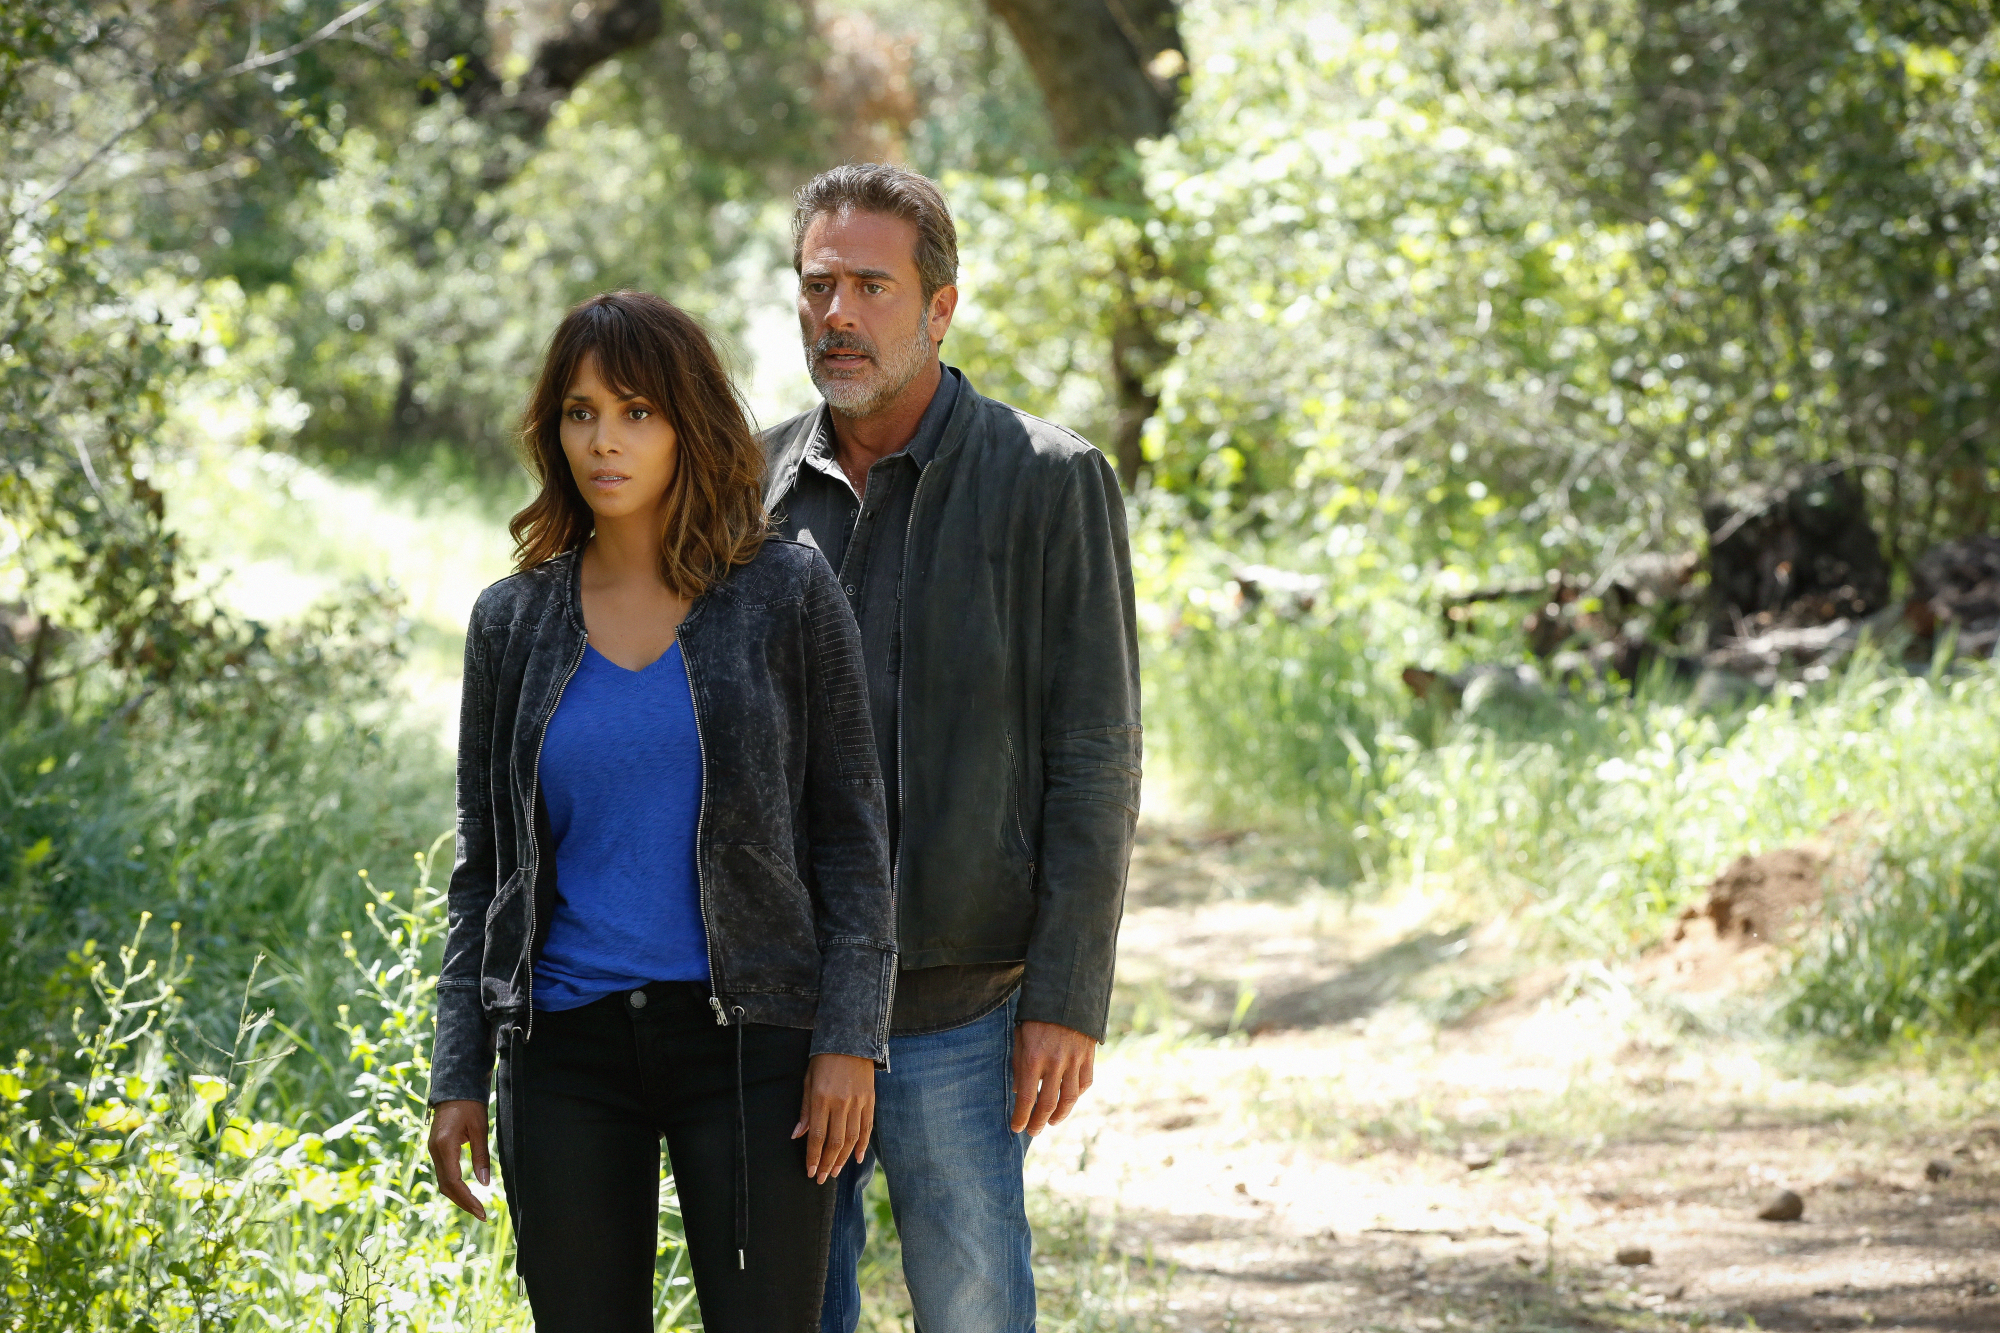 Halle Berry as Molly Woods and Jeffrey Dean Morgan as JD Richter.